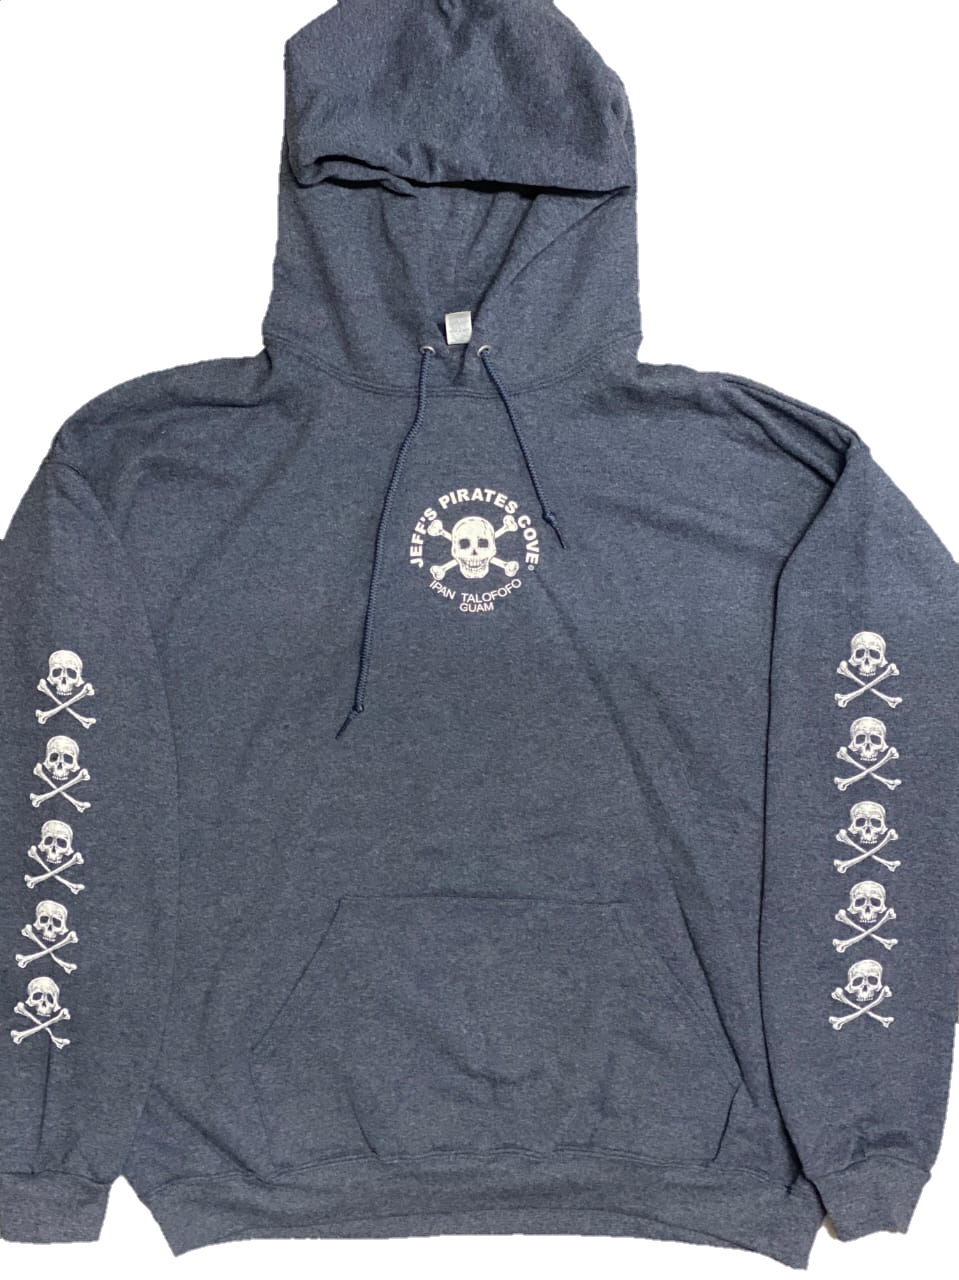 Sweater | Jeffs Pirates Cove Chest